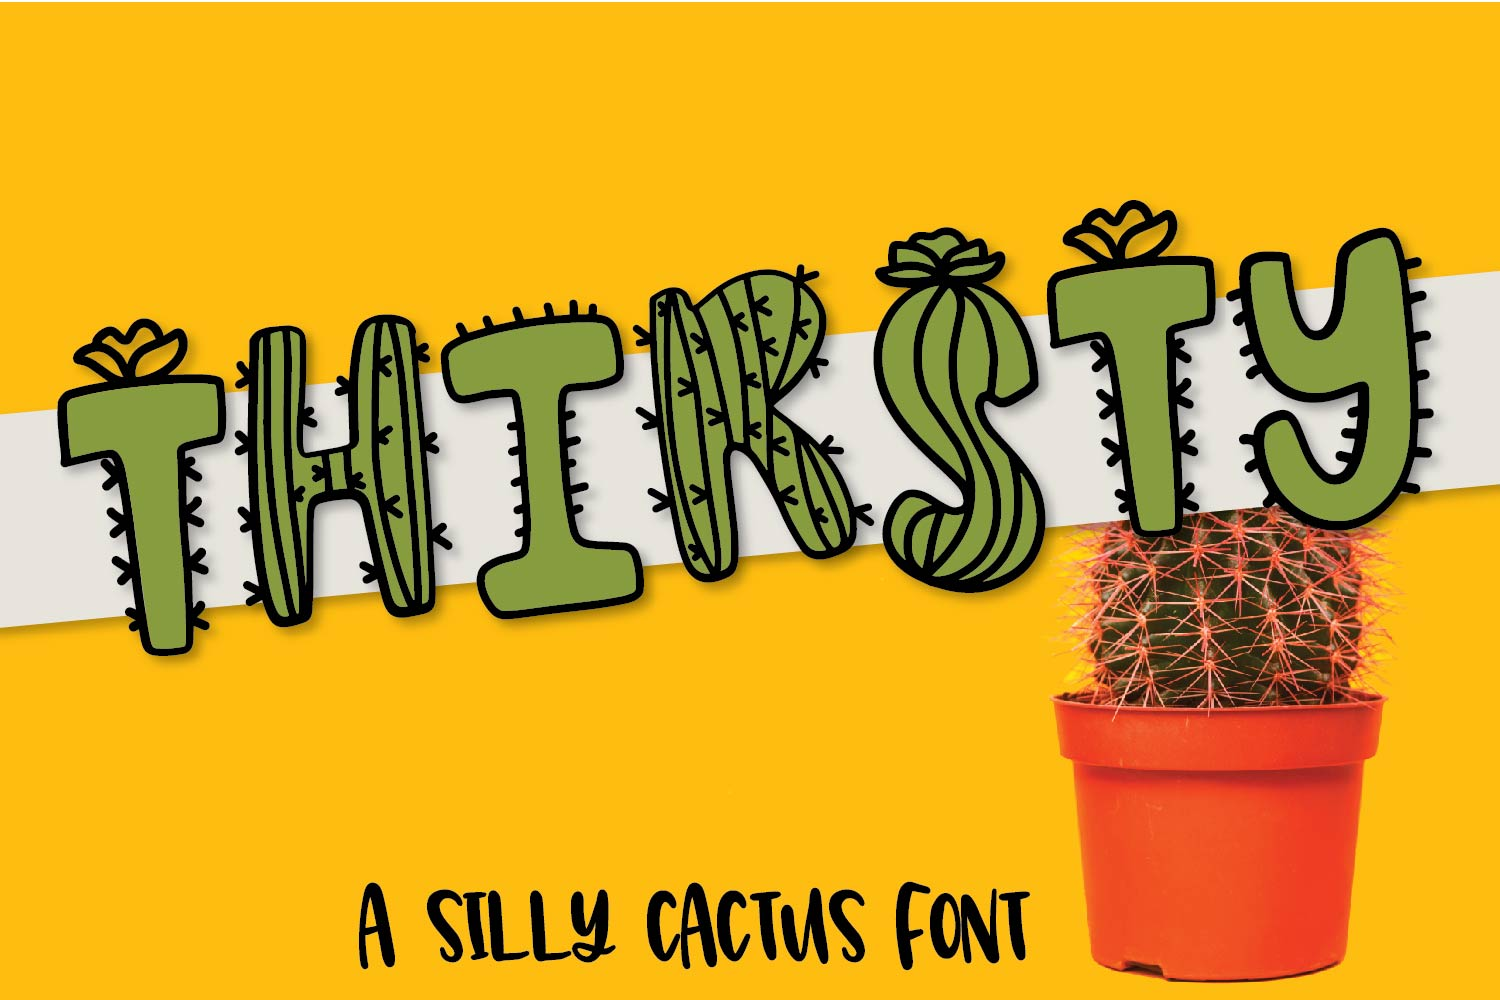 Thirsty Cactus - A Silly Cacti Font example image 1